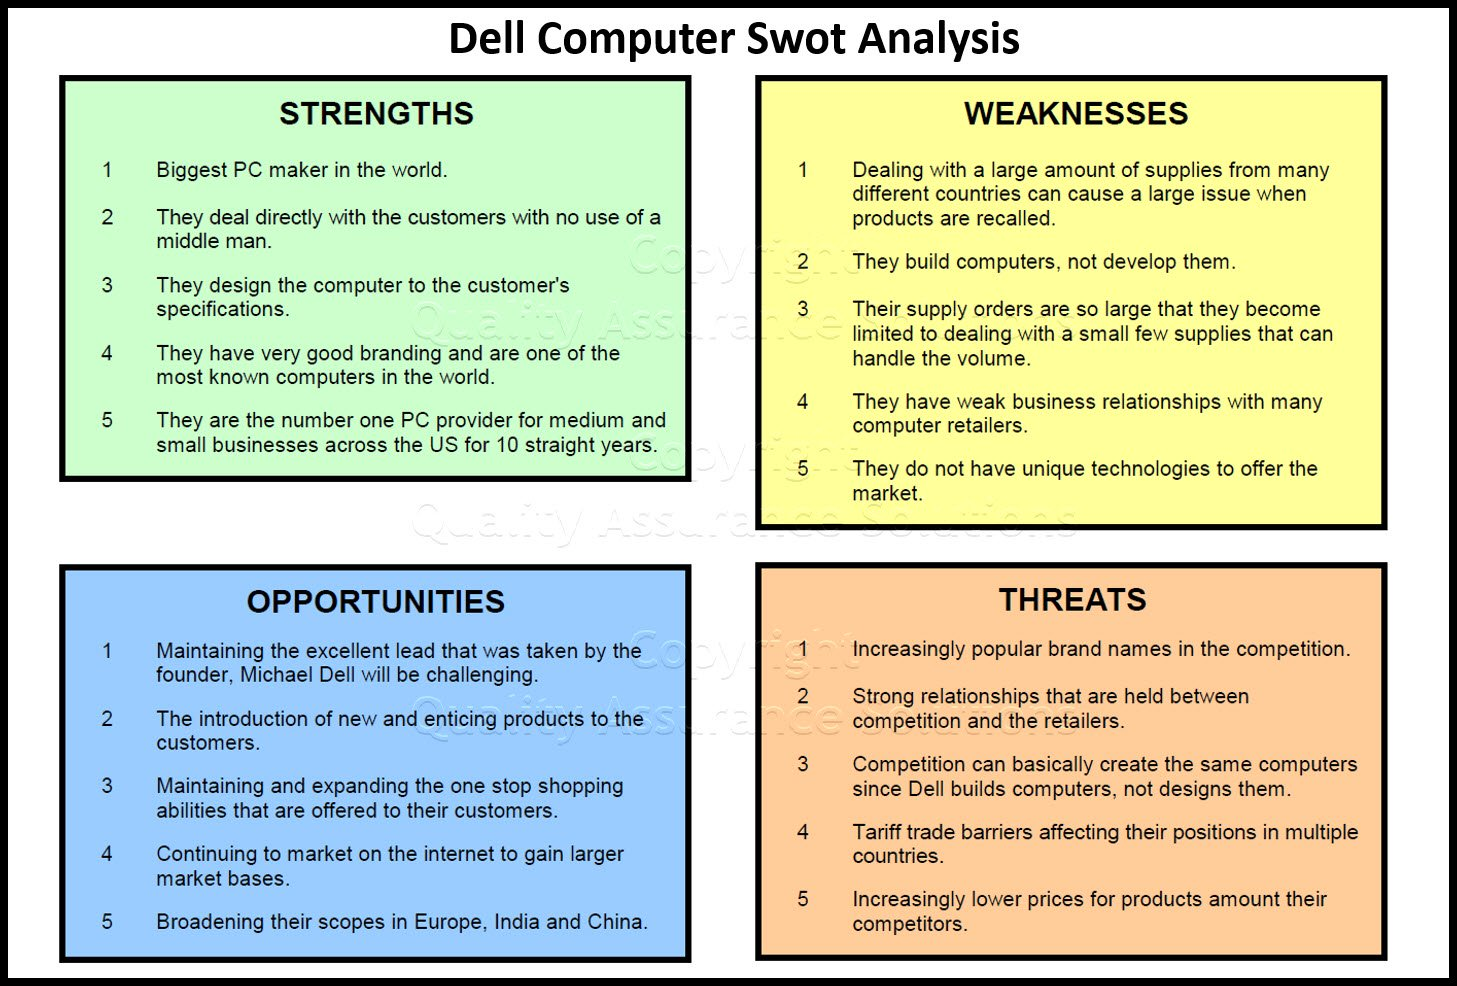 swot analysis of dell business slide